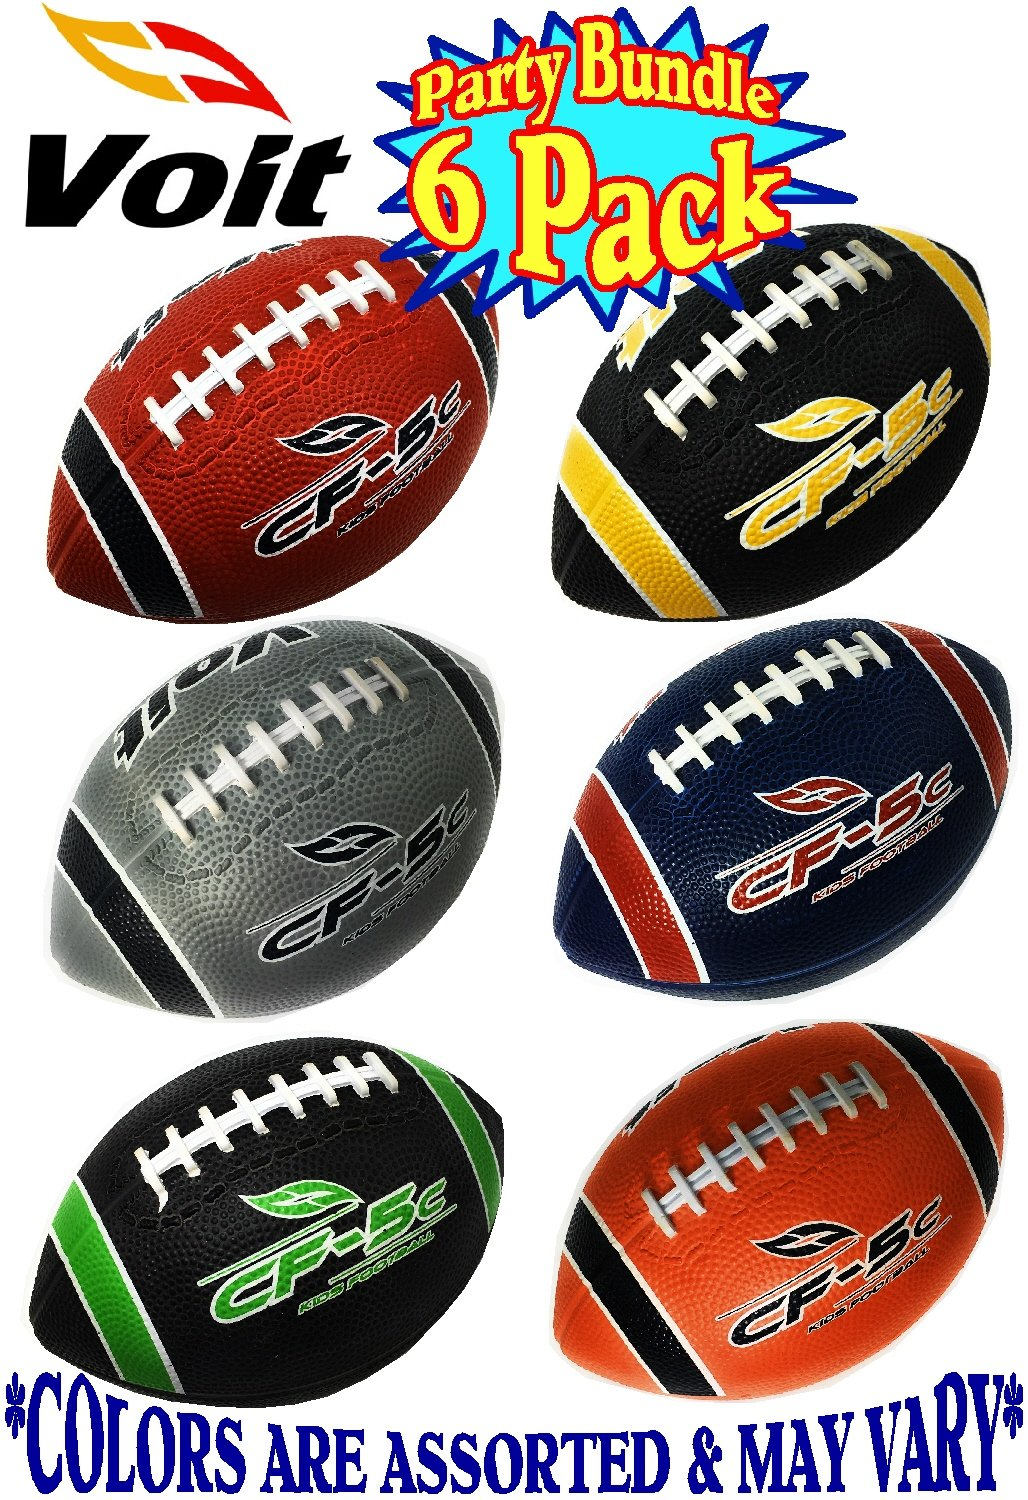 Indoor//Outdoor Gift Set Party Bundle Asssorted Colors Balls Ship Deflated Voit 6 Mini Rubber Inflatable Footballs 6 Pack